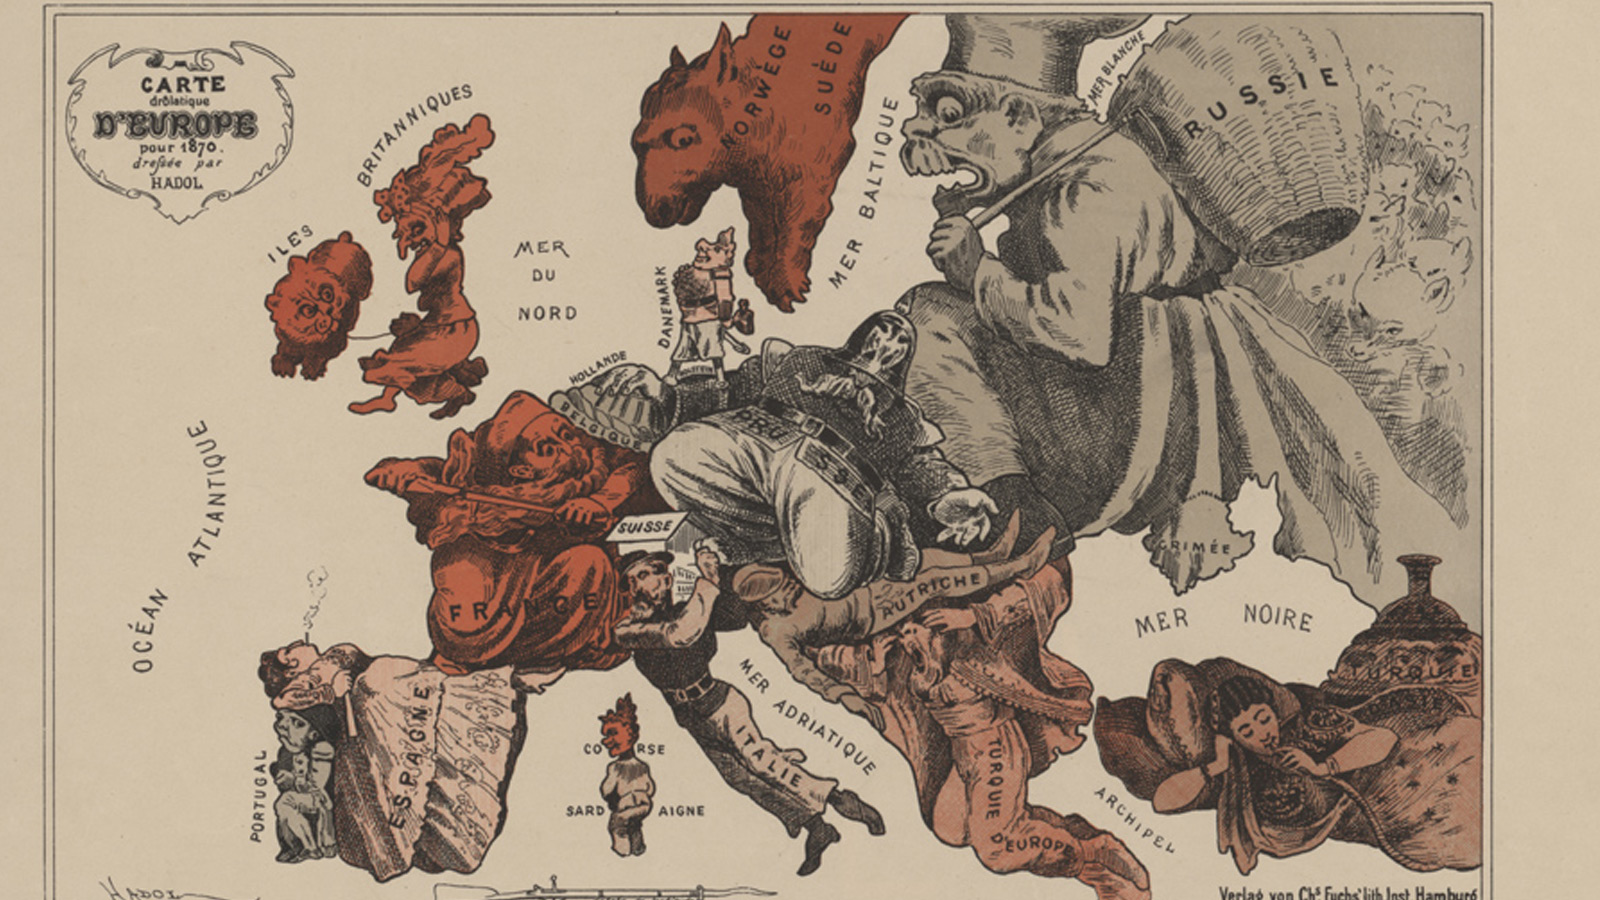 Origins banner crop showing two satirical maps of the Europe